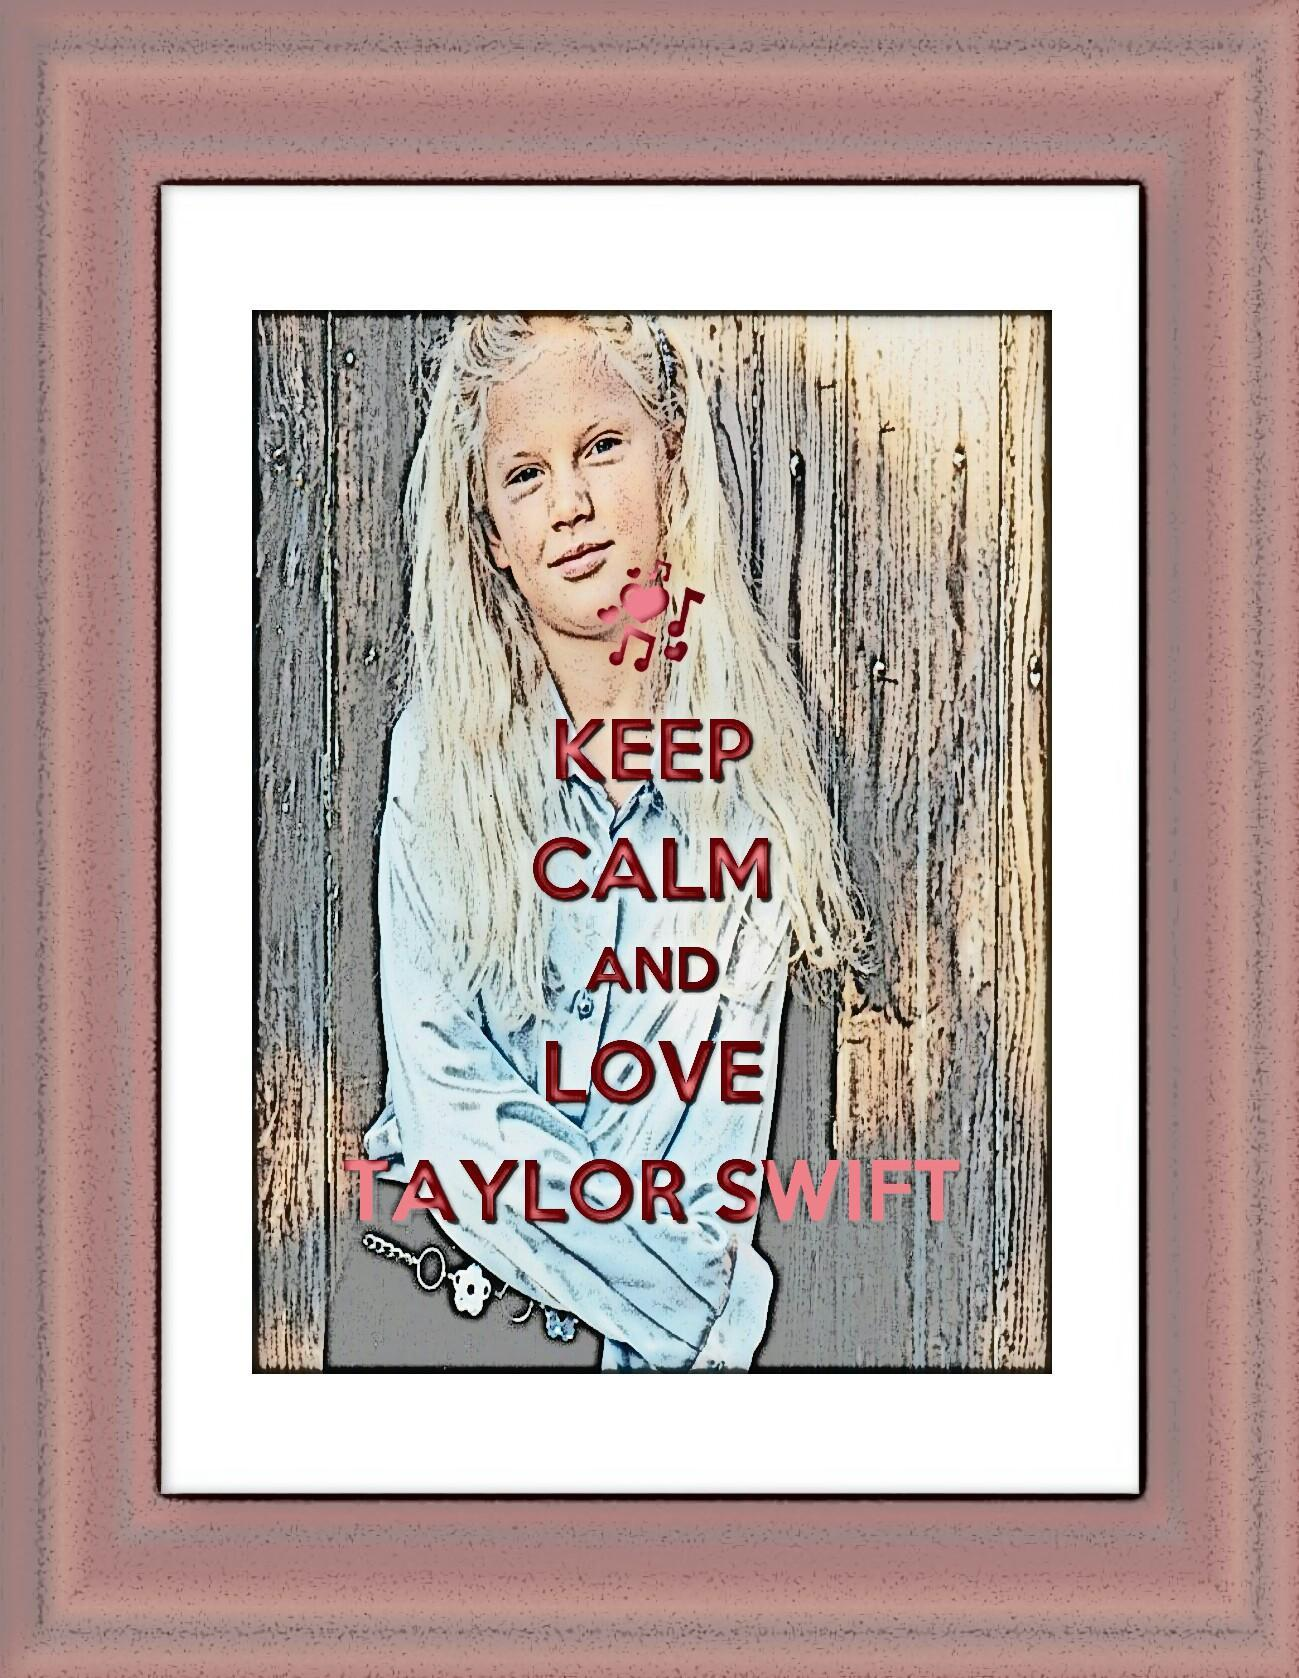 Taylor Swift Fan Club Page